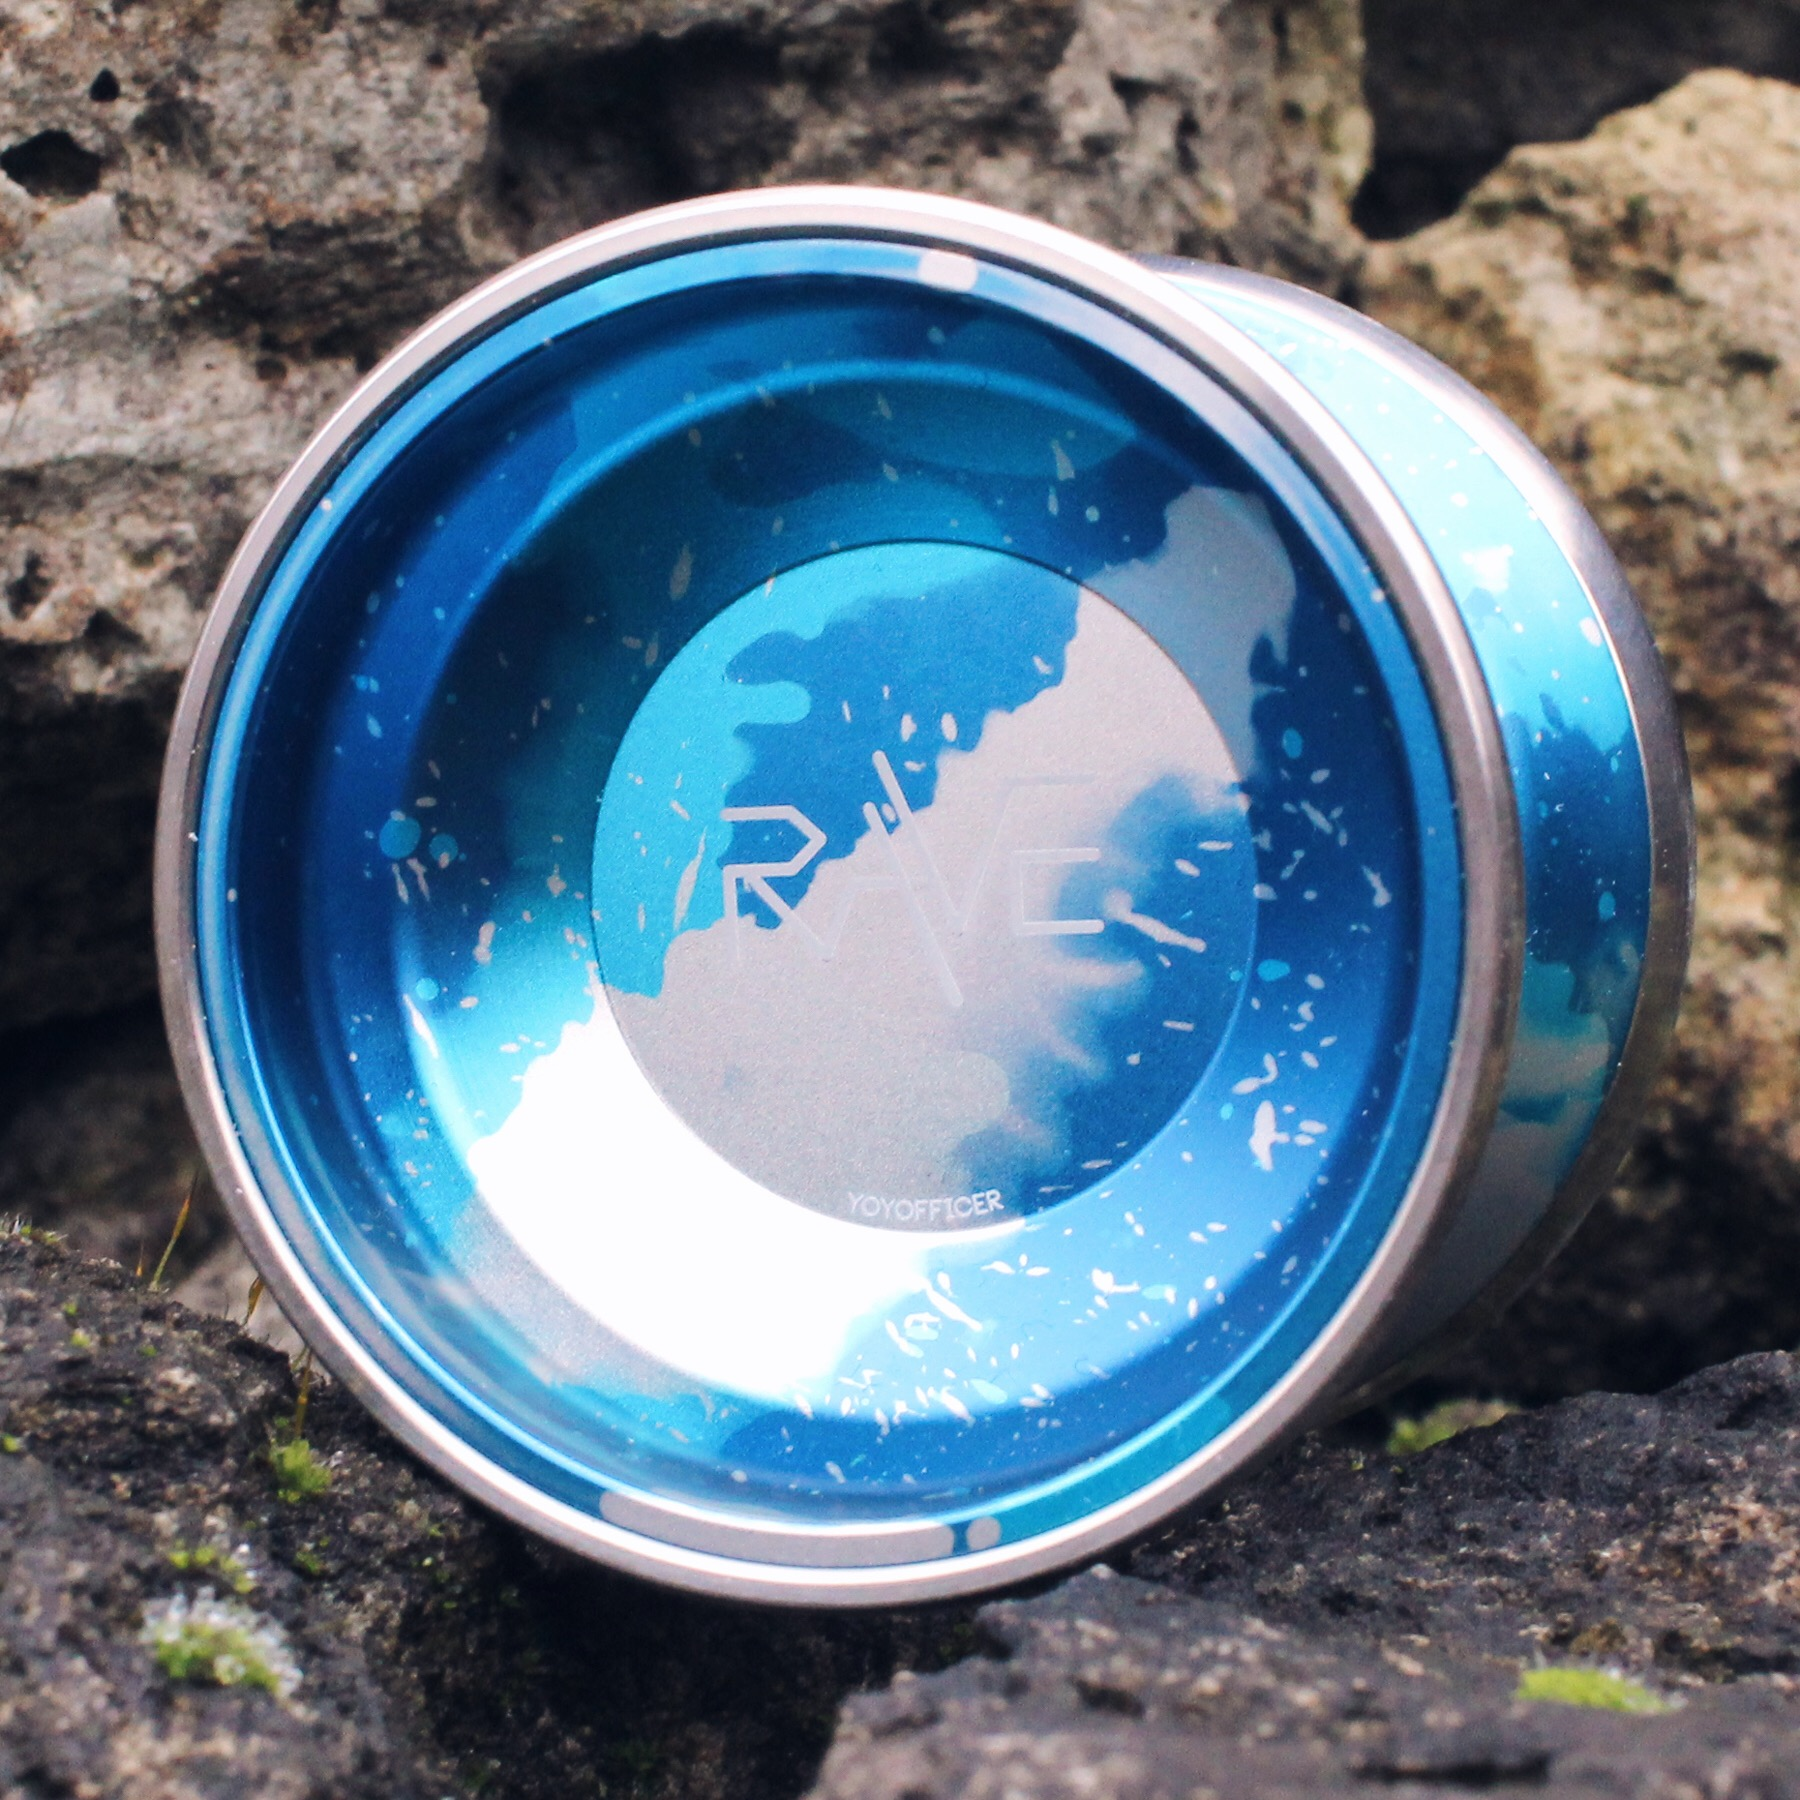 Yoyofficer Rave - Blue / Silver